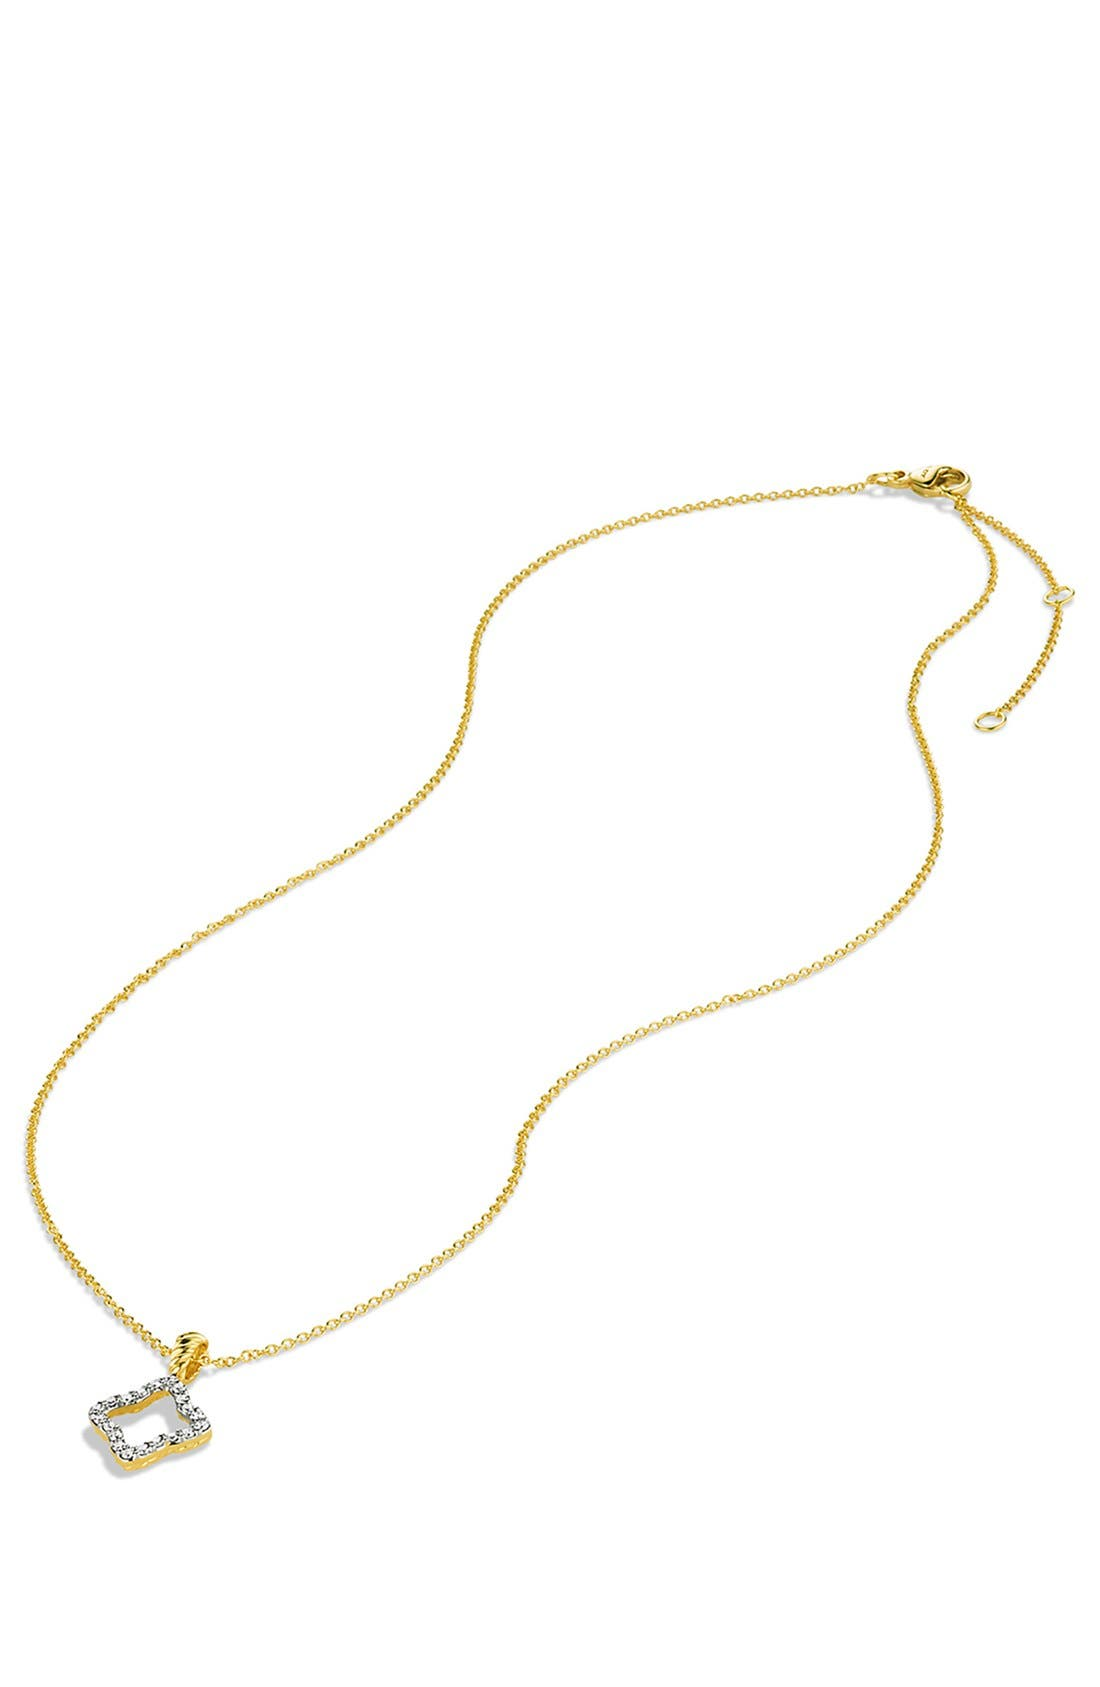 Alternate Image 3  - David Yurman 'Cable Collectibles' Quatrefoil Pendant with Diamonds in Gold on Chain